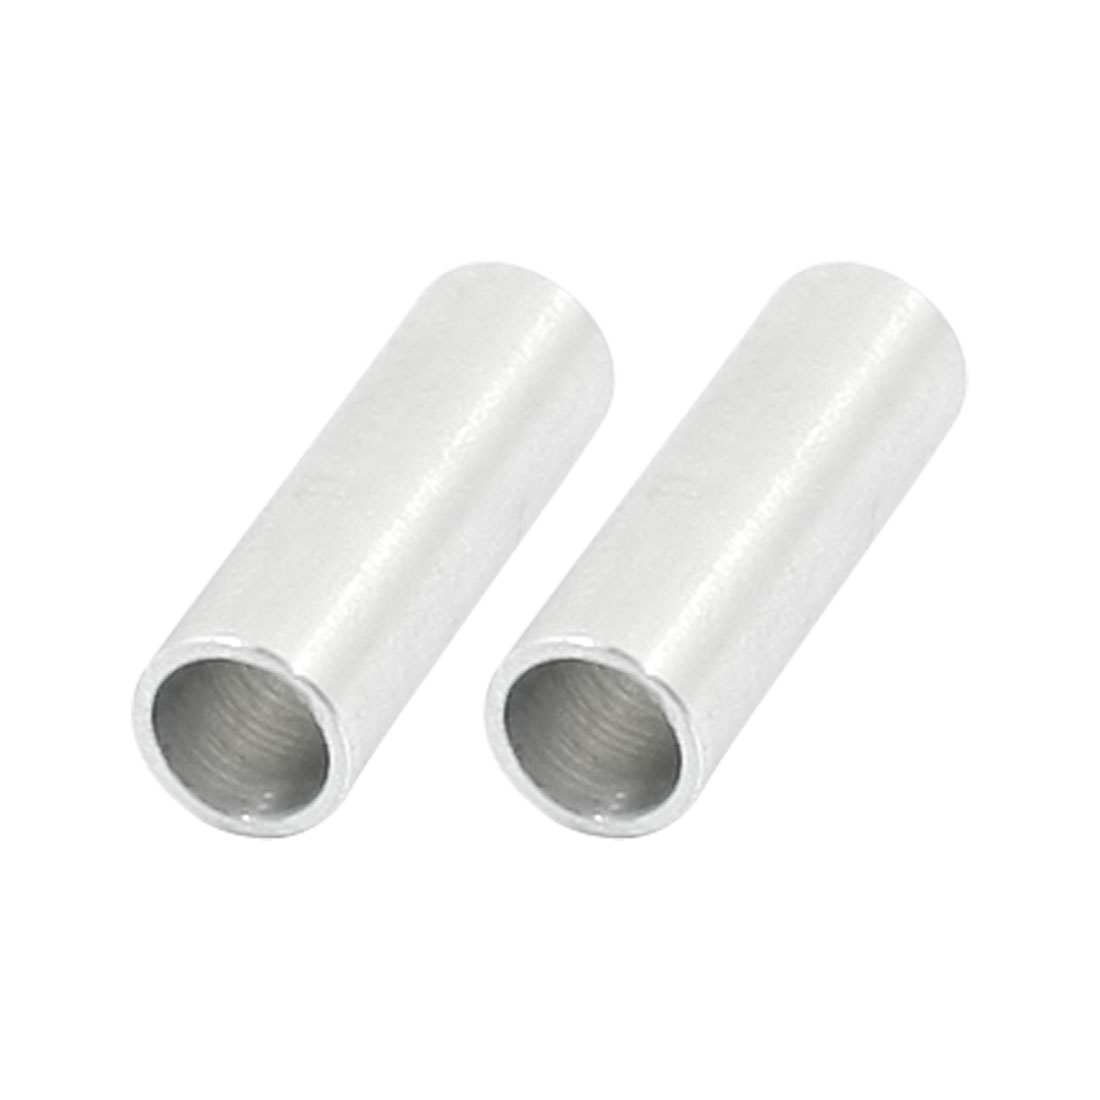 2Pcs Cylinder Silver Tone Aluminum Prop Shaft Converter Adapter 6.35mm x 5mm x 20mm for RC Model Ship Electric Boat